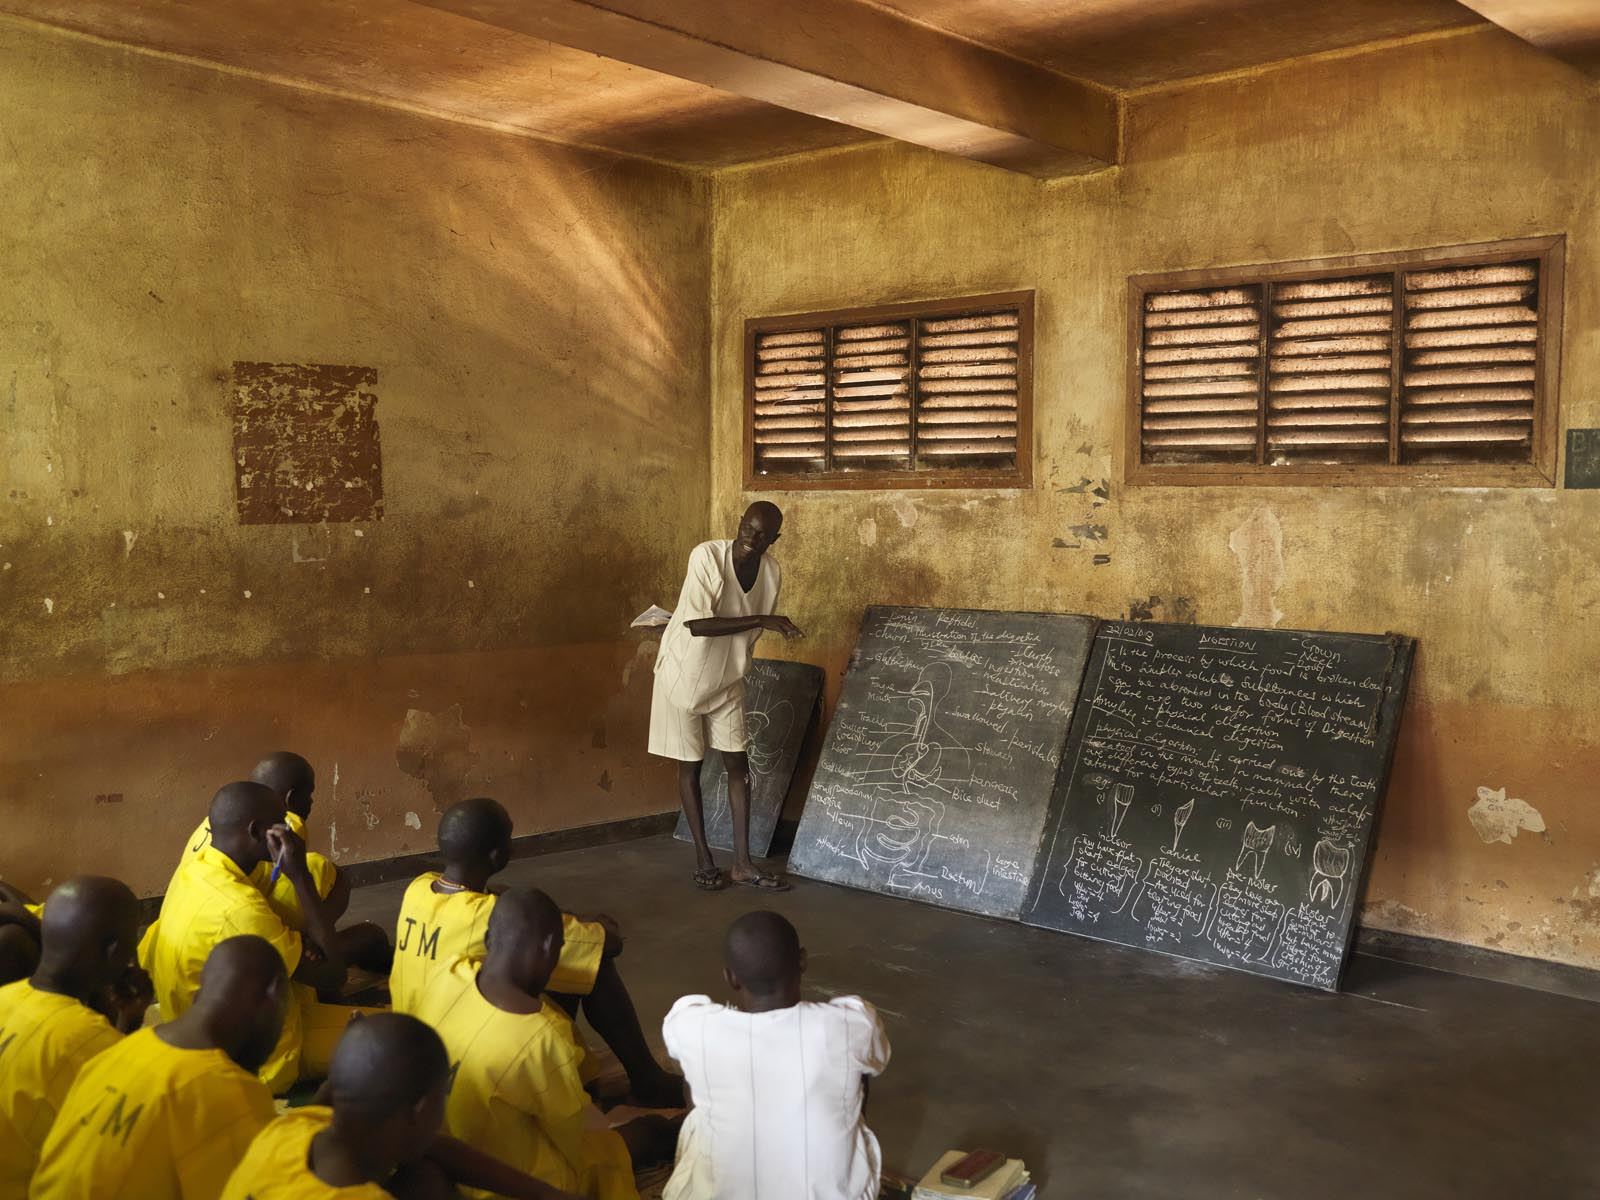 Biology lessons at Kirinya Main Prison in Jinja Uganda